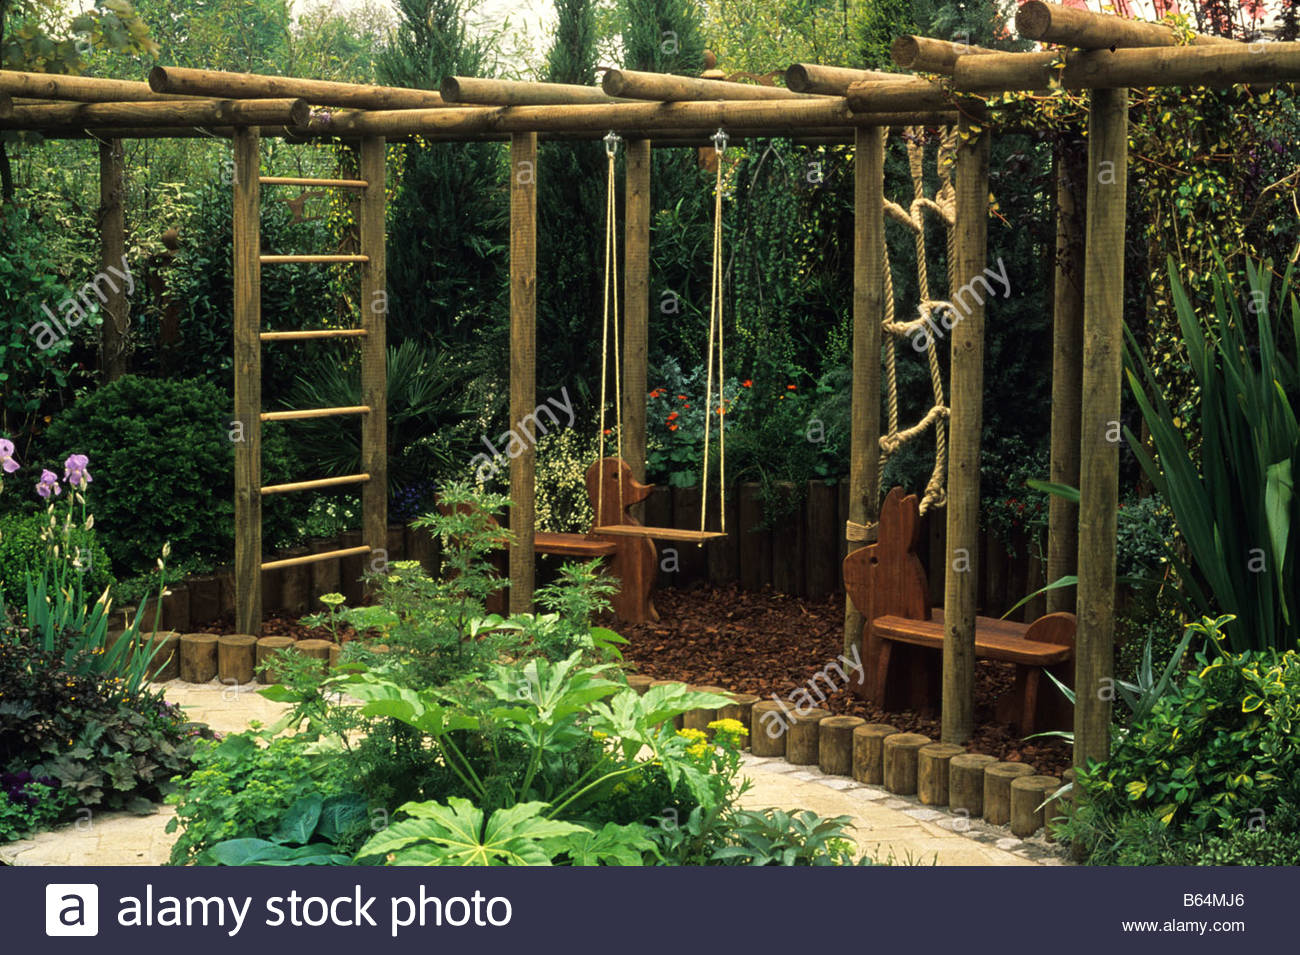 Child friendly wooden climbing apparatus in corner of for Children friendly garden designs